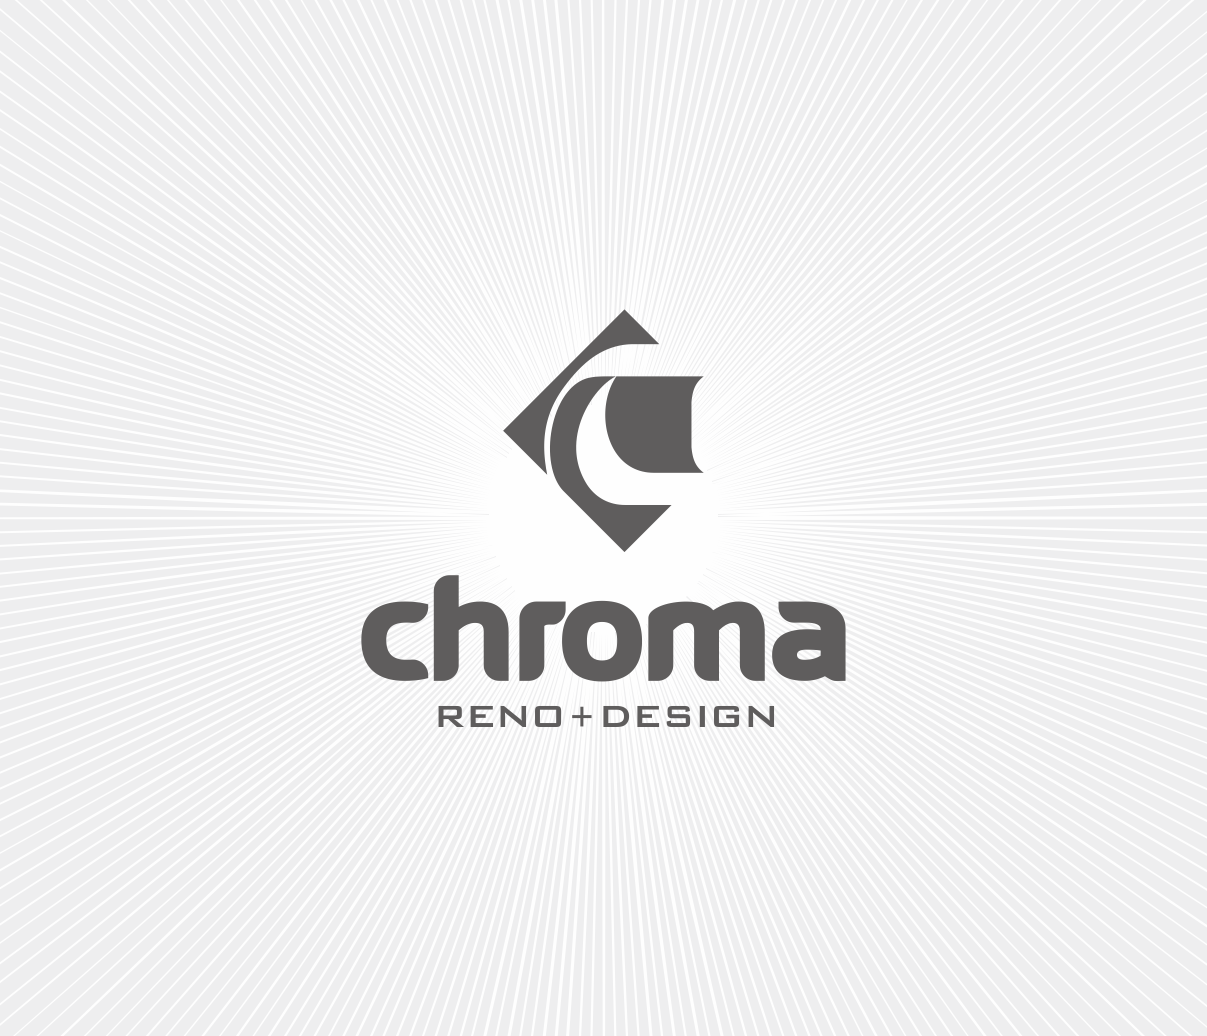 Logo Design by Armada Jamaluddin - Entry No. 126 in the Logo Design Contest Inspiring Logo Design for Chroma Reno+Design.